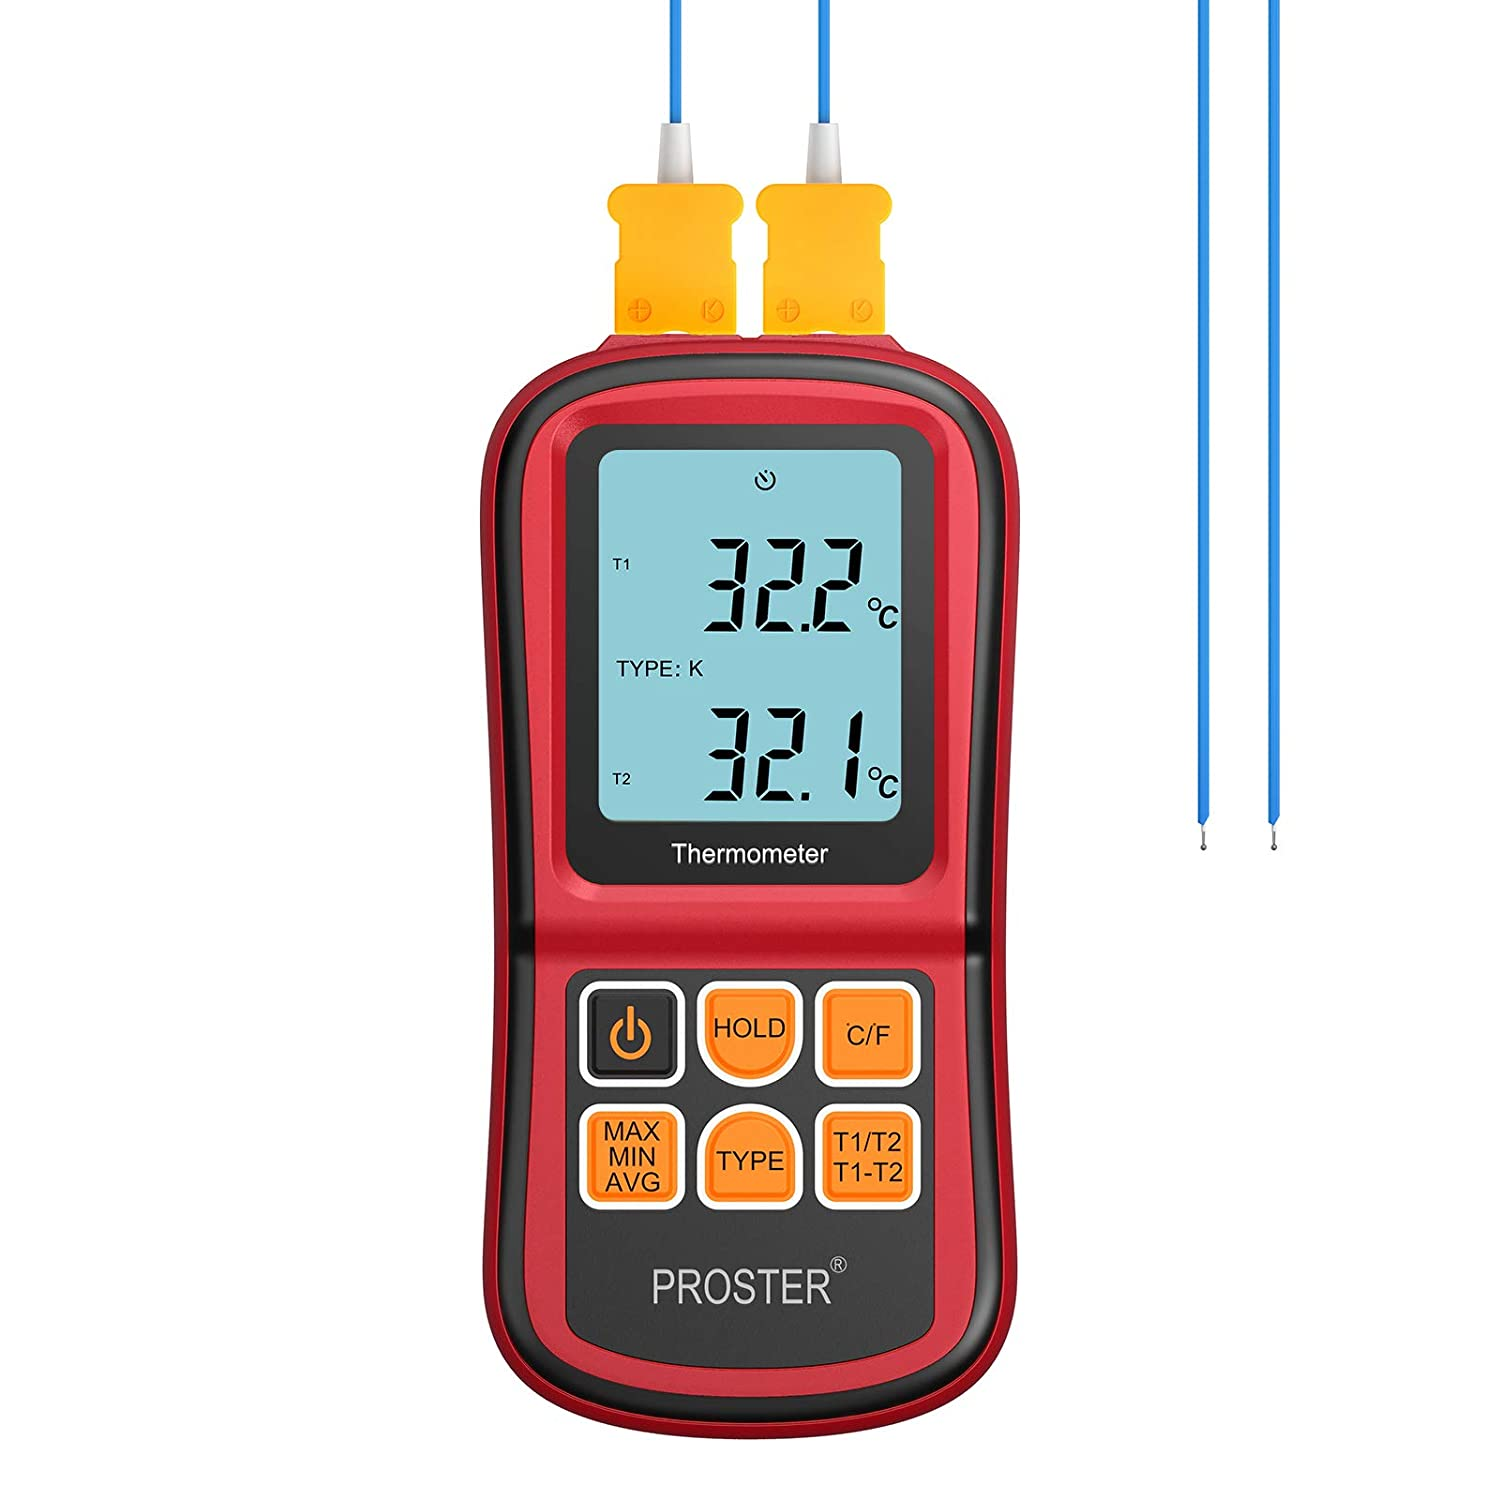 Proster Digital Thermocouple Temperature Thermometer with Two K-Type Thermocouple Probe Backlight LCD K Type Thermometer Dual Channel for K/J/T/E/R/S/N Type